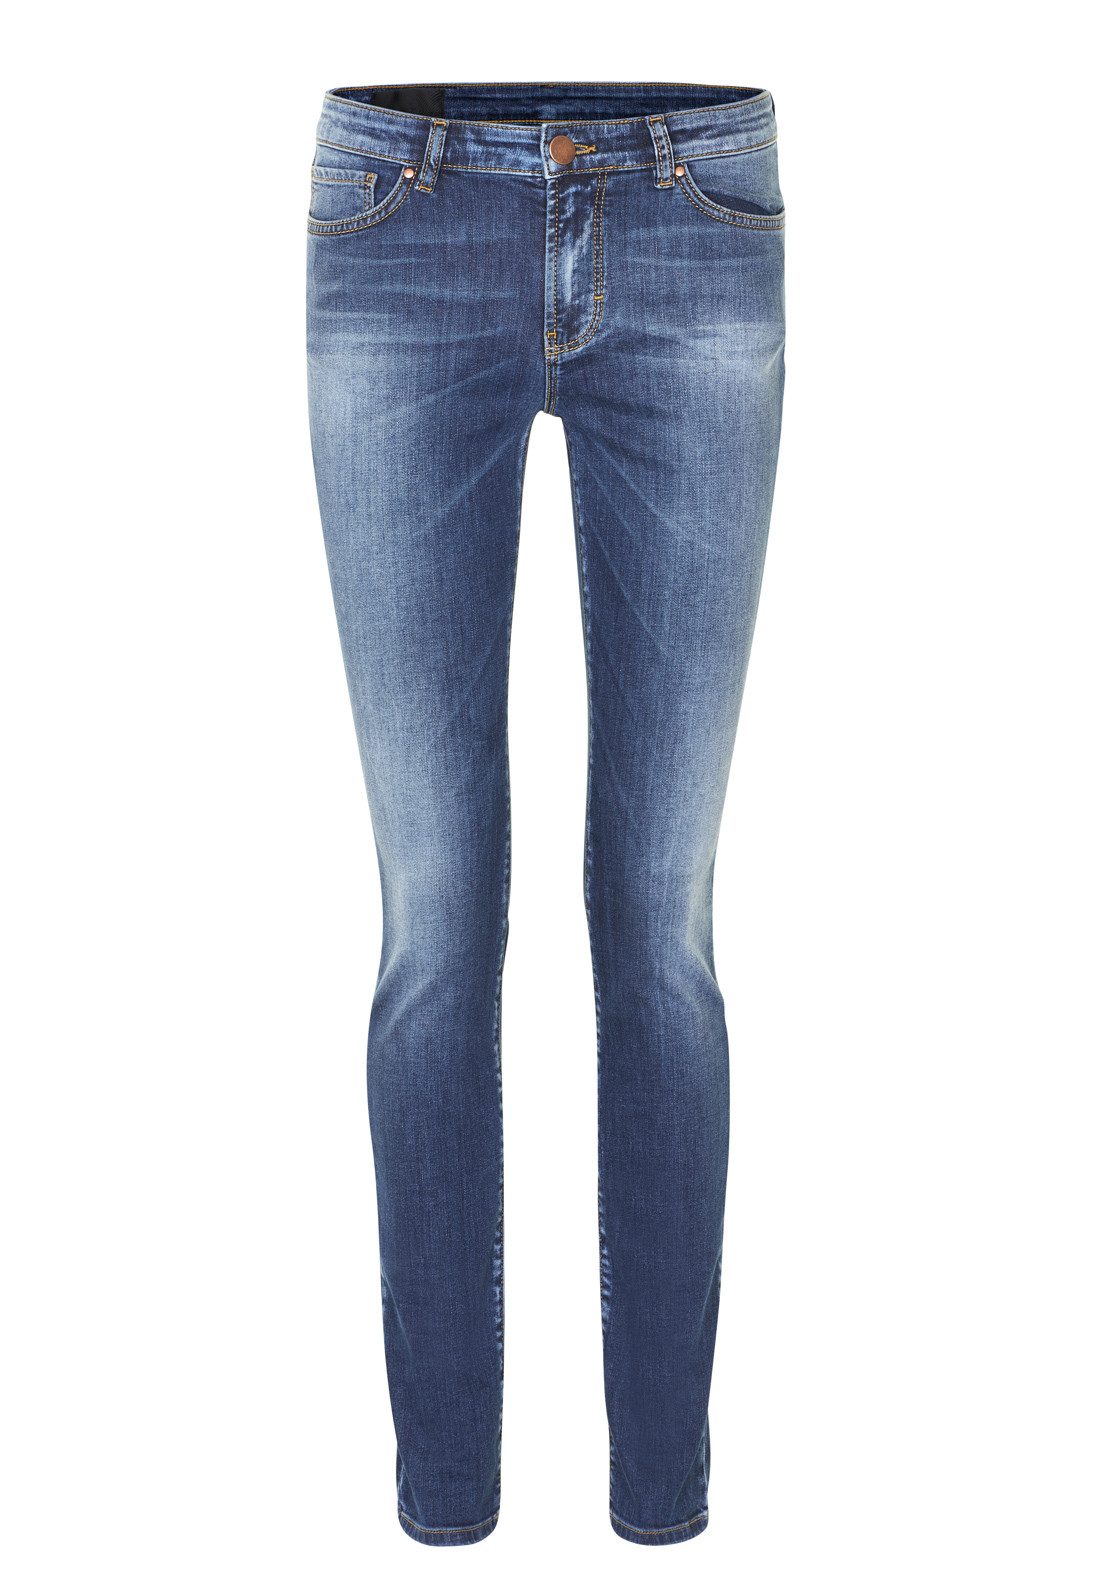 Inwear Slim Leg Jeans, Medium Blue Wash